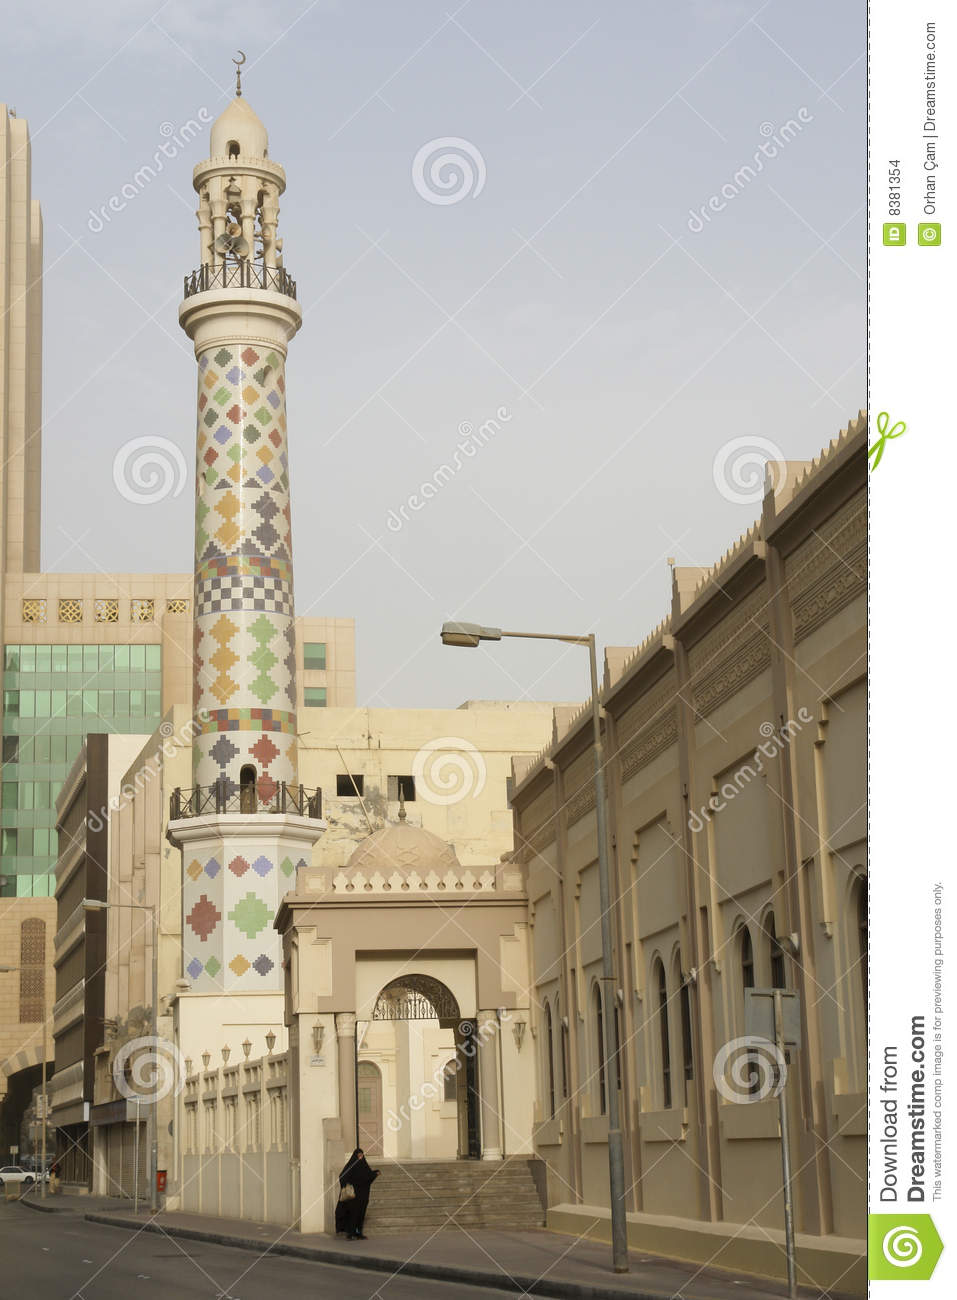 A mosque in bahrain city center stock images image 8381354 for United international decor bahrain